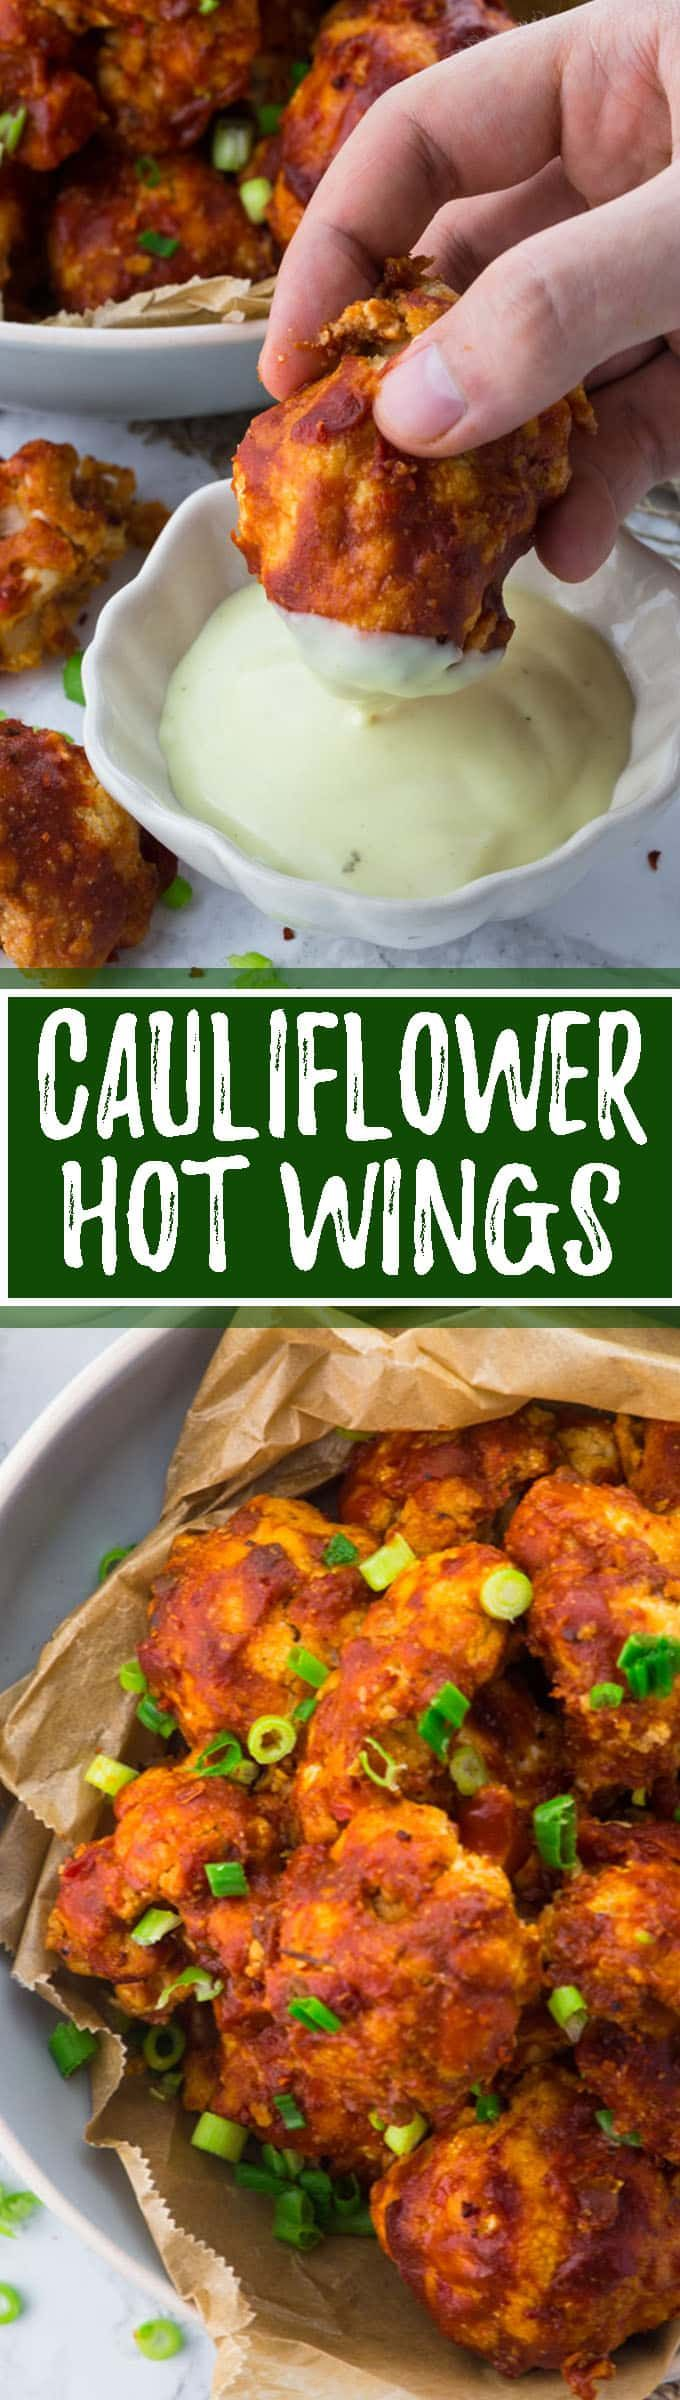 These vegan cauliflower hot wings are the perfect comfort food. They're so tangy & spicy! Such a delicious vegan recipe. I like them best with vegan aioli. Or fill them in pitas and you got an amazing vegan dinner! Big YUM!! <3   veganheaven.org